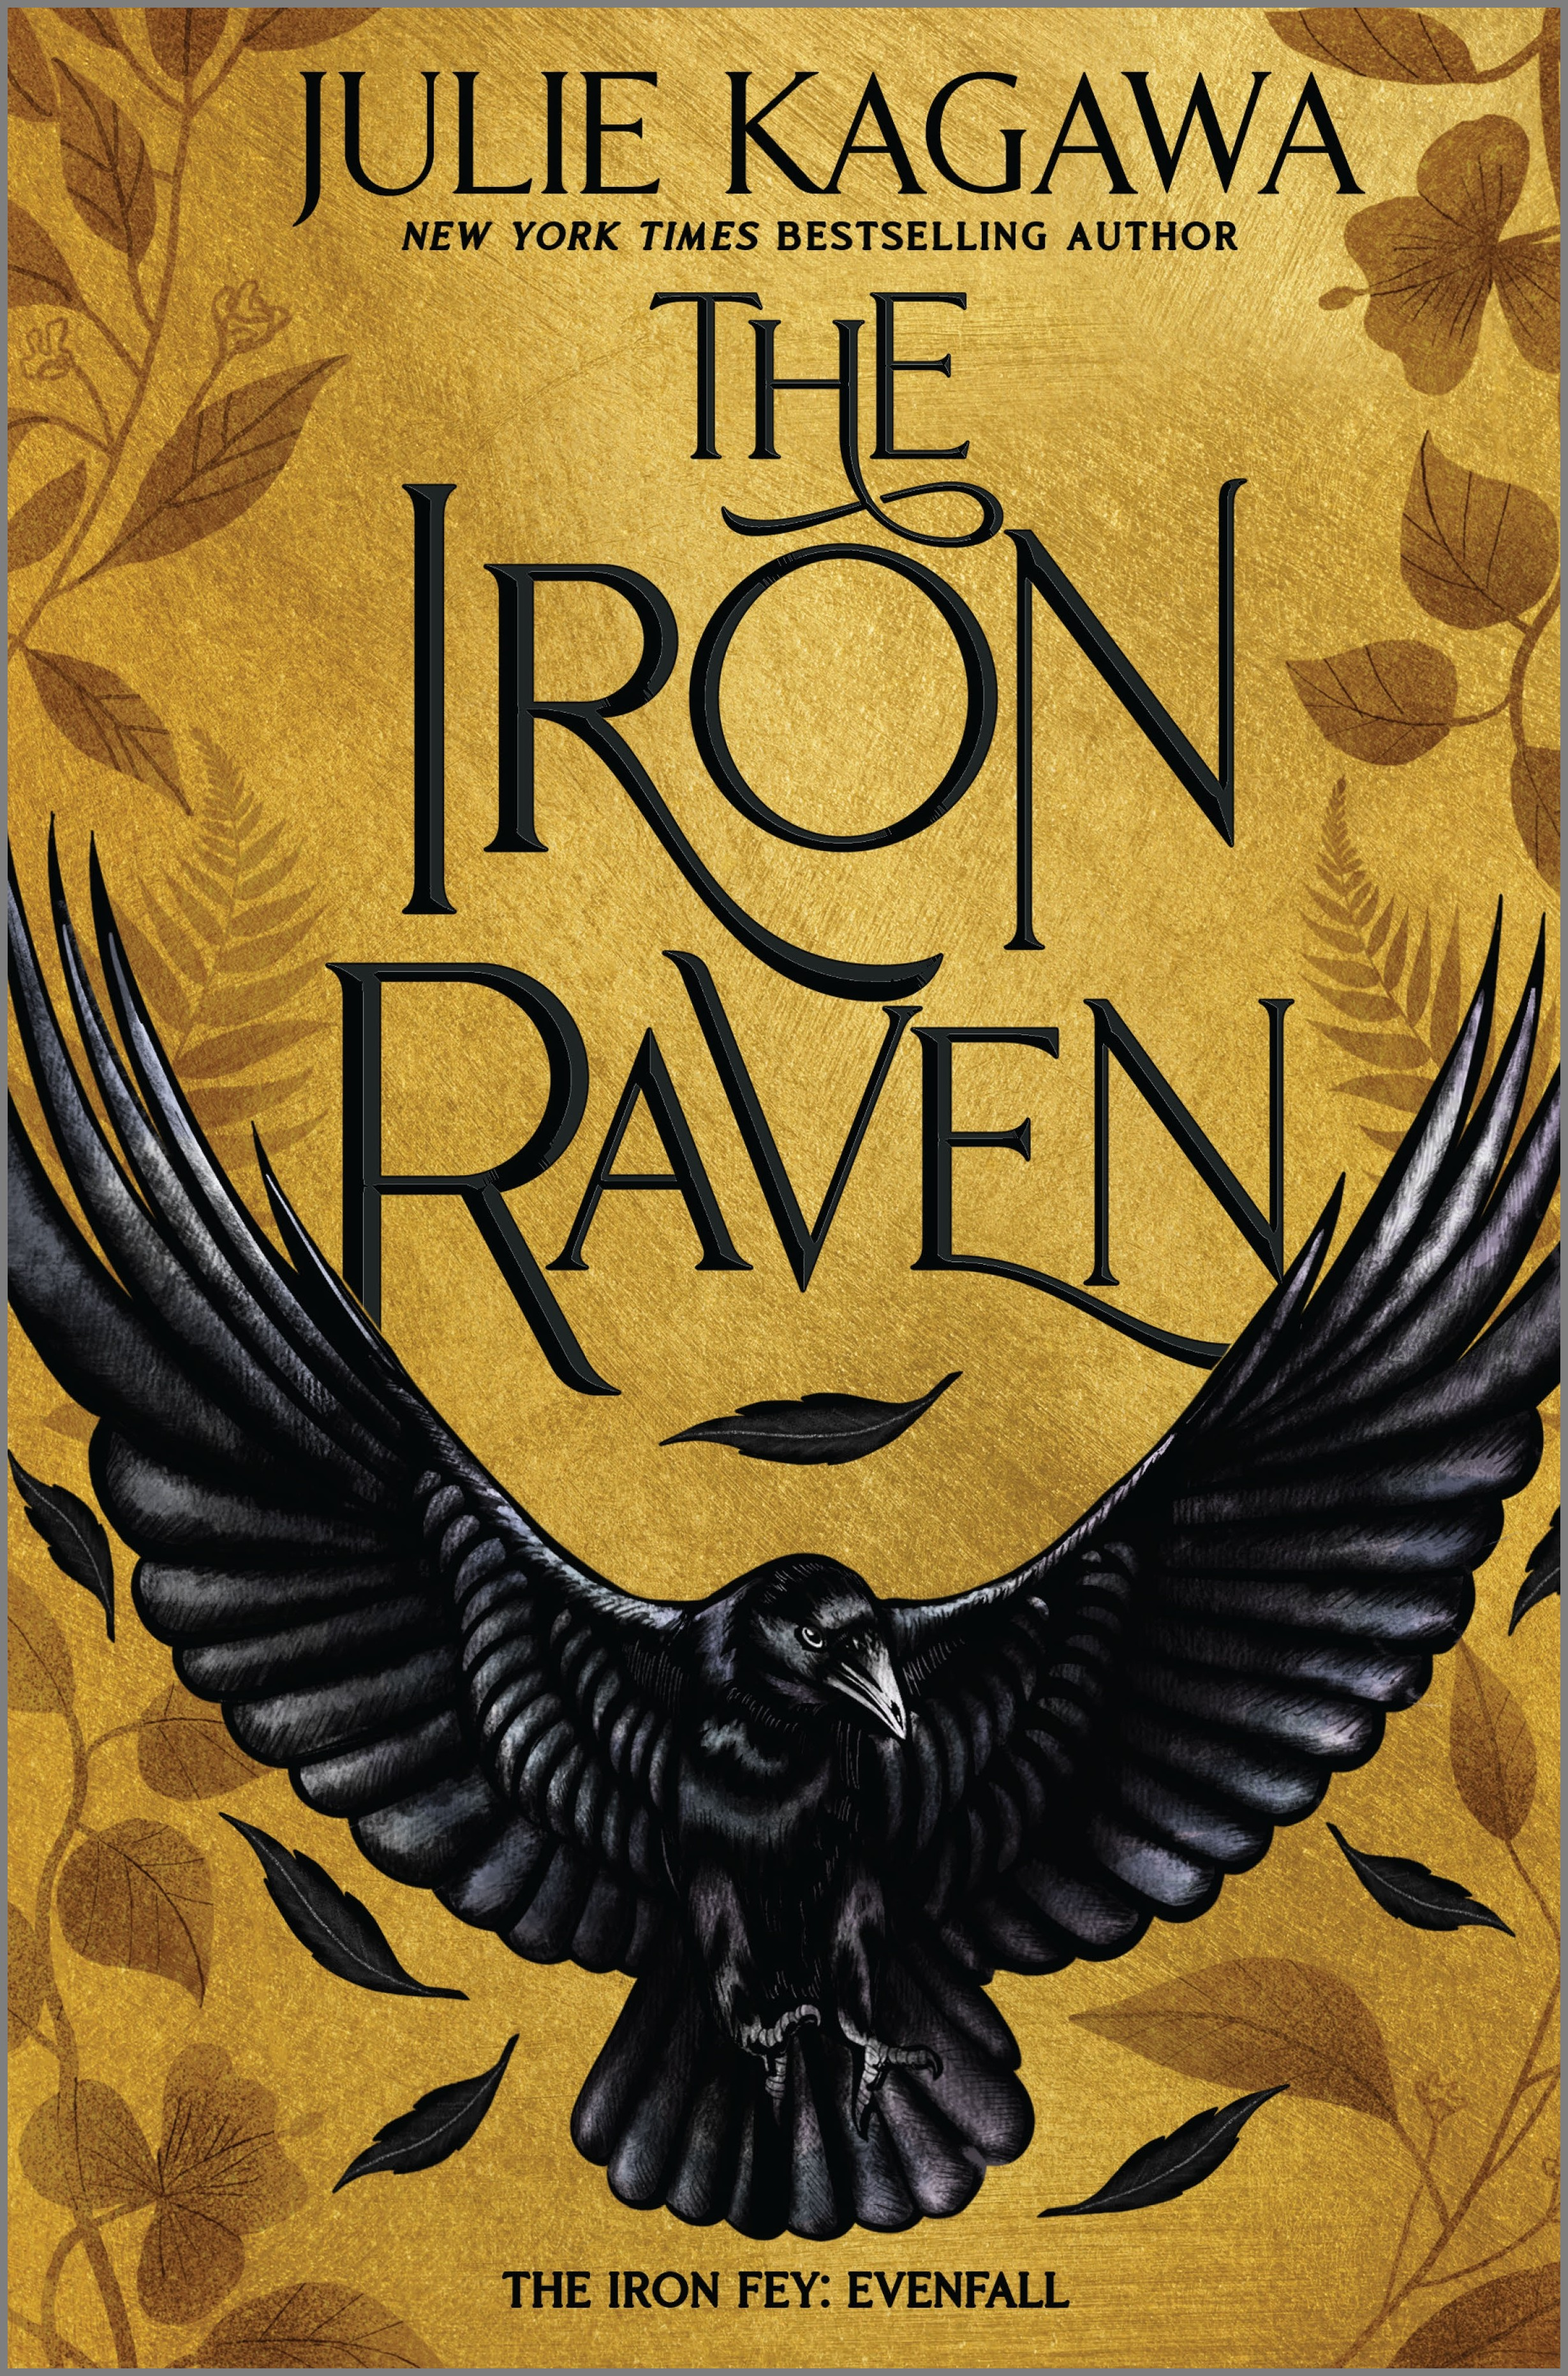 Book cover: The Iron Raven by Julie Kagawa